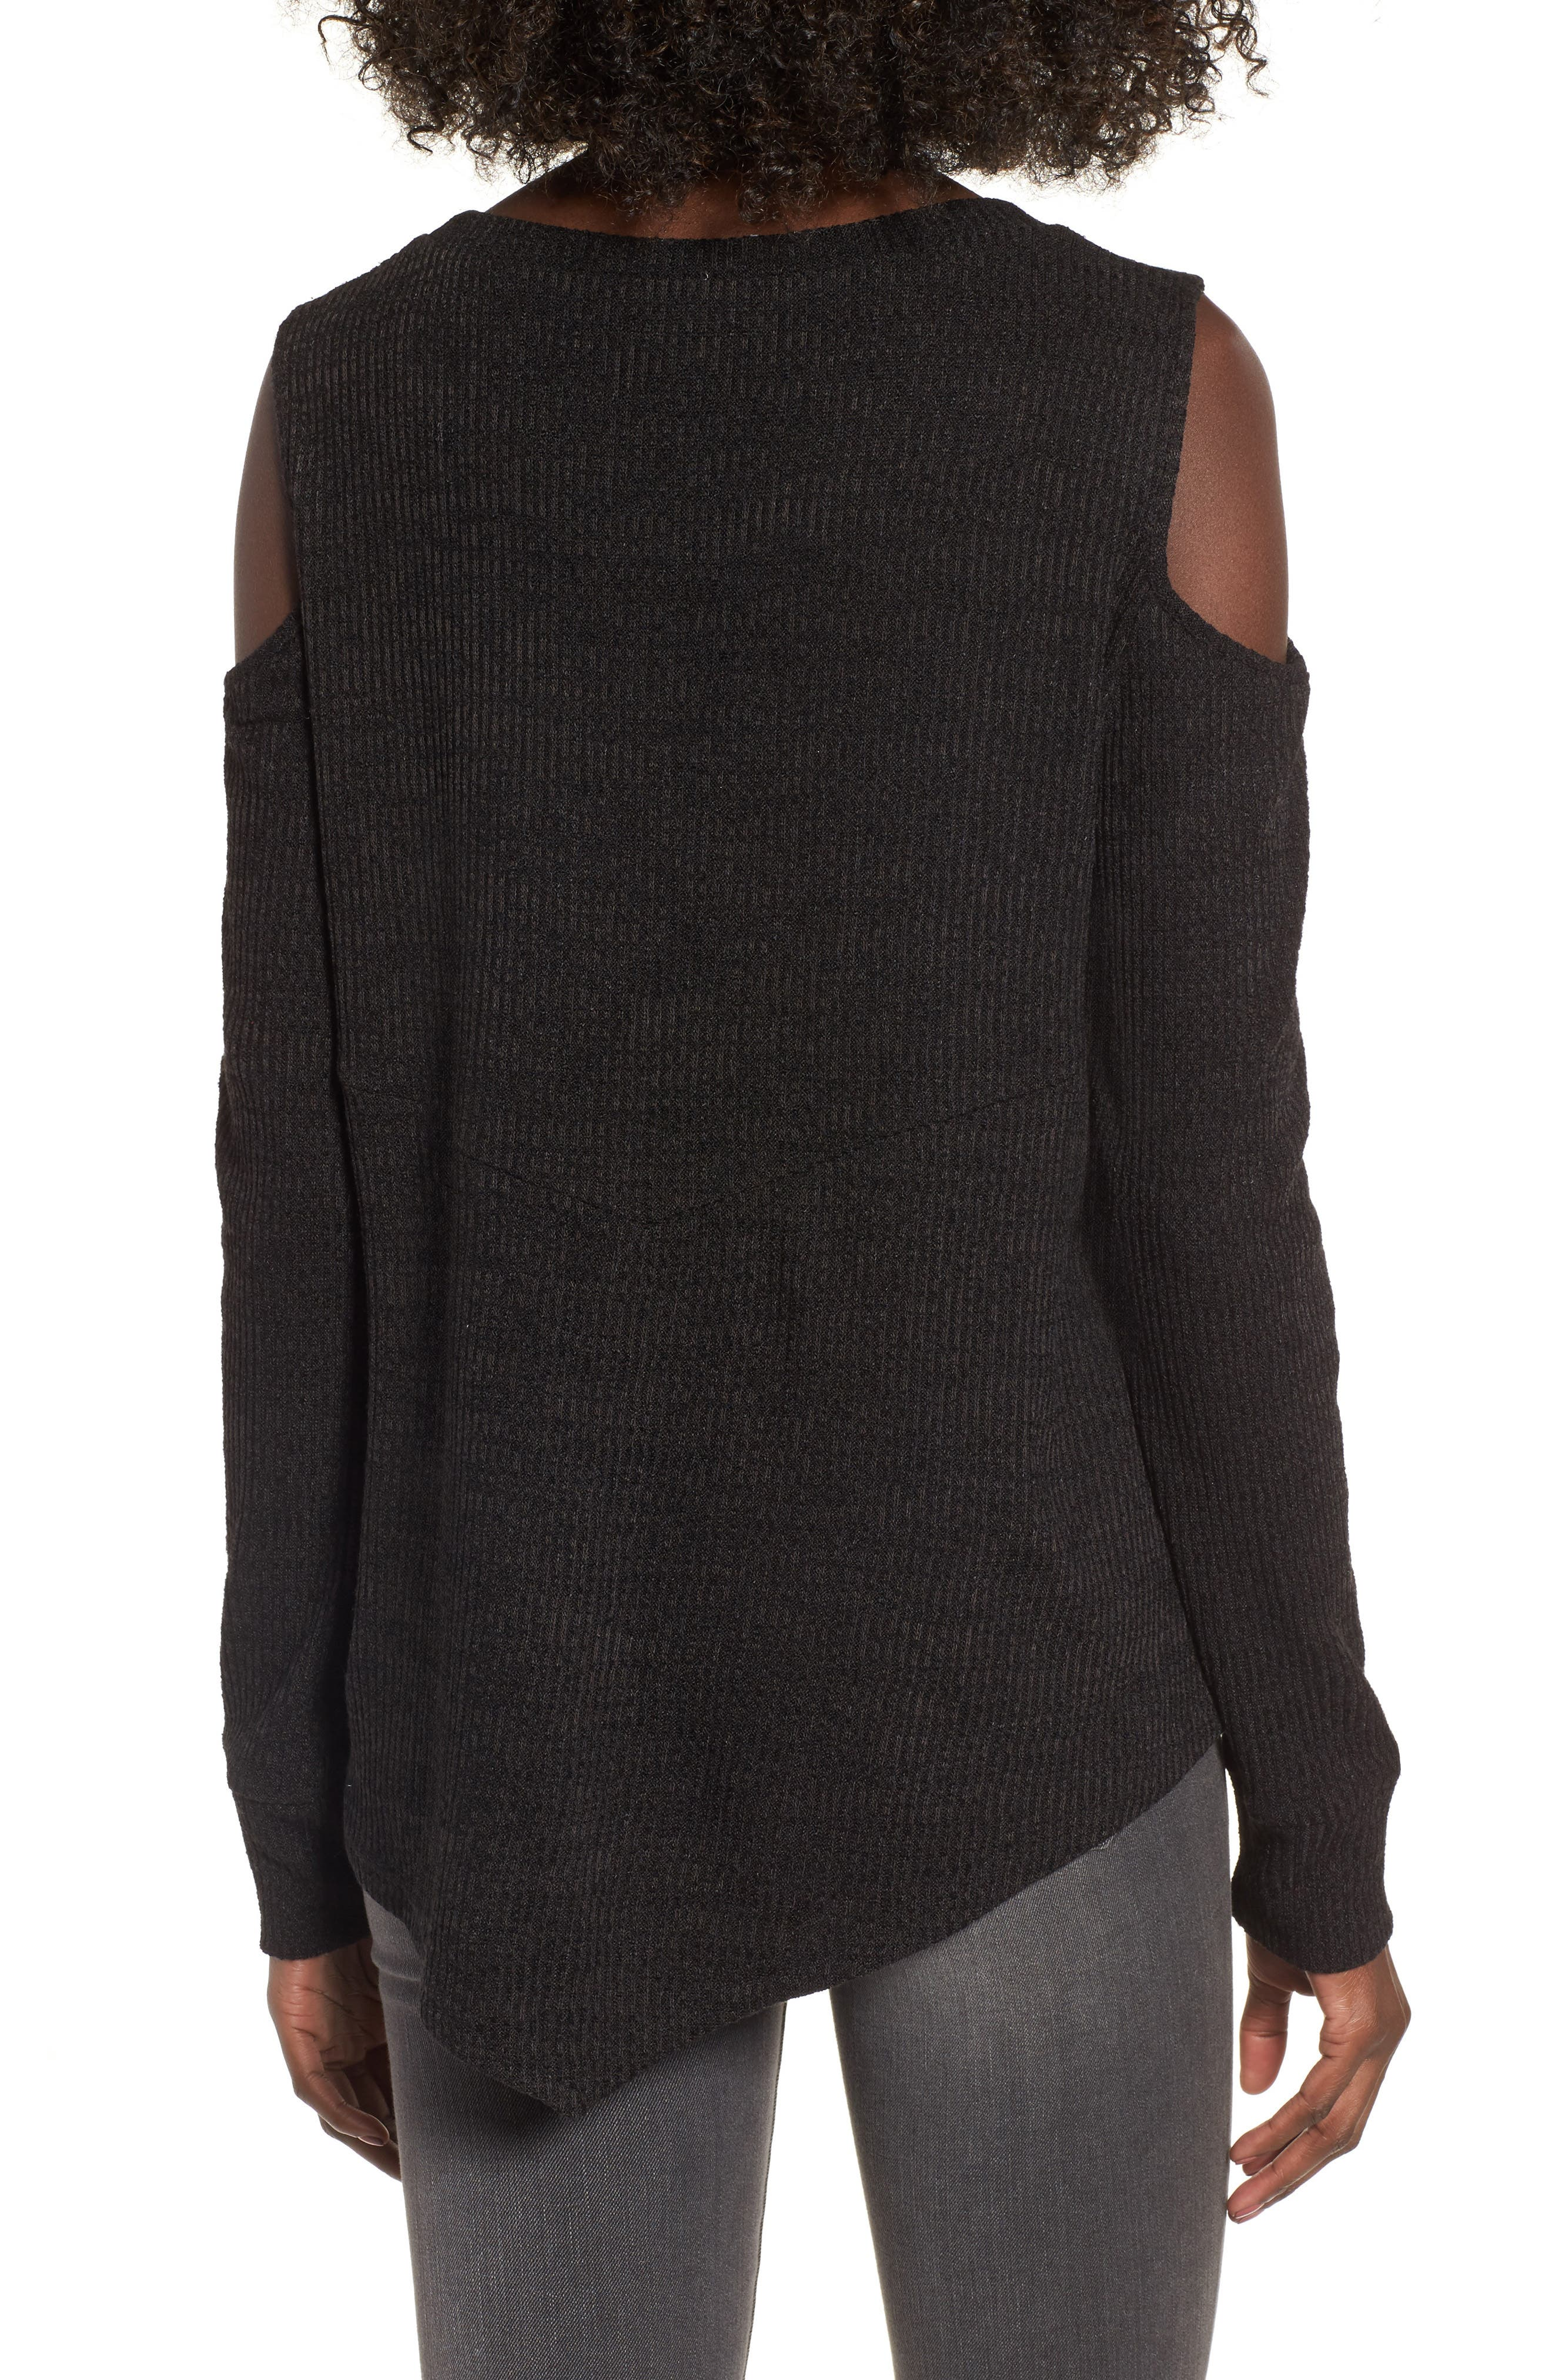 All Mine Cold Shoulder Thermal Top,                             Alternate thumbnail 2, color,                             001